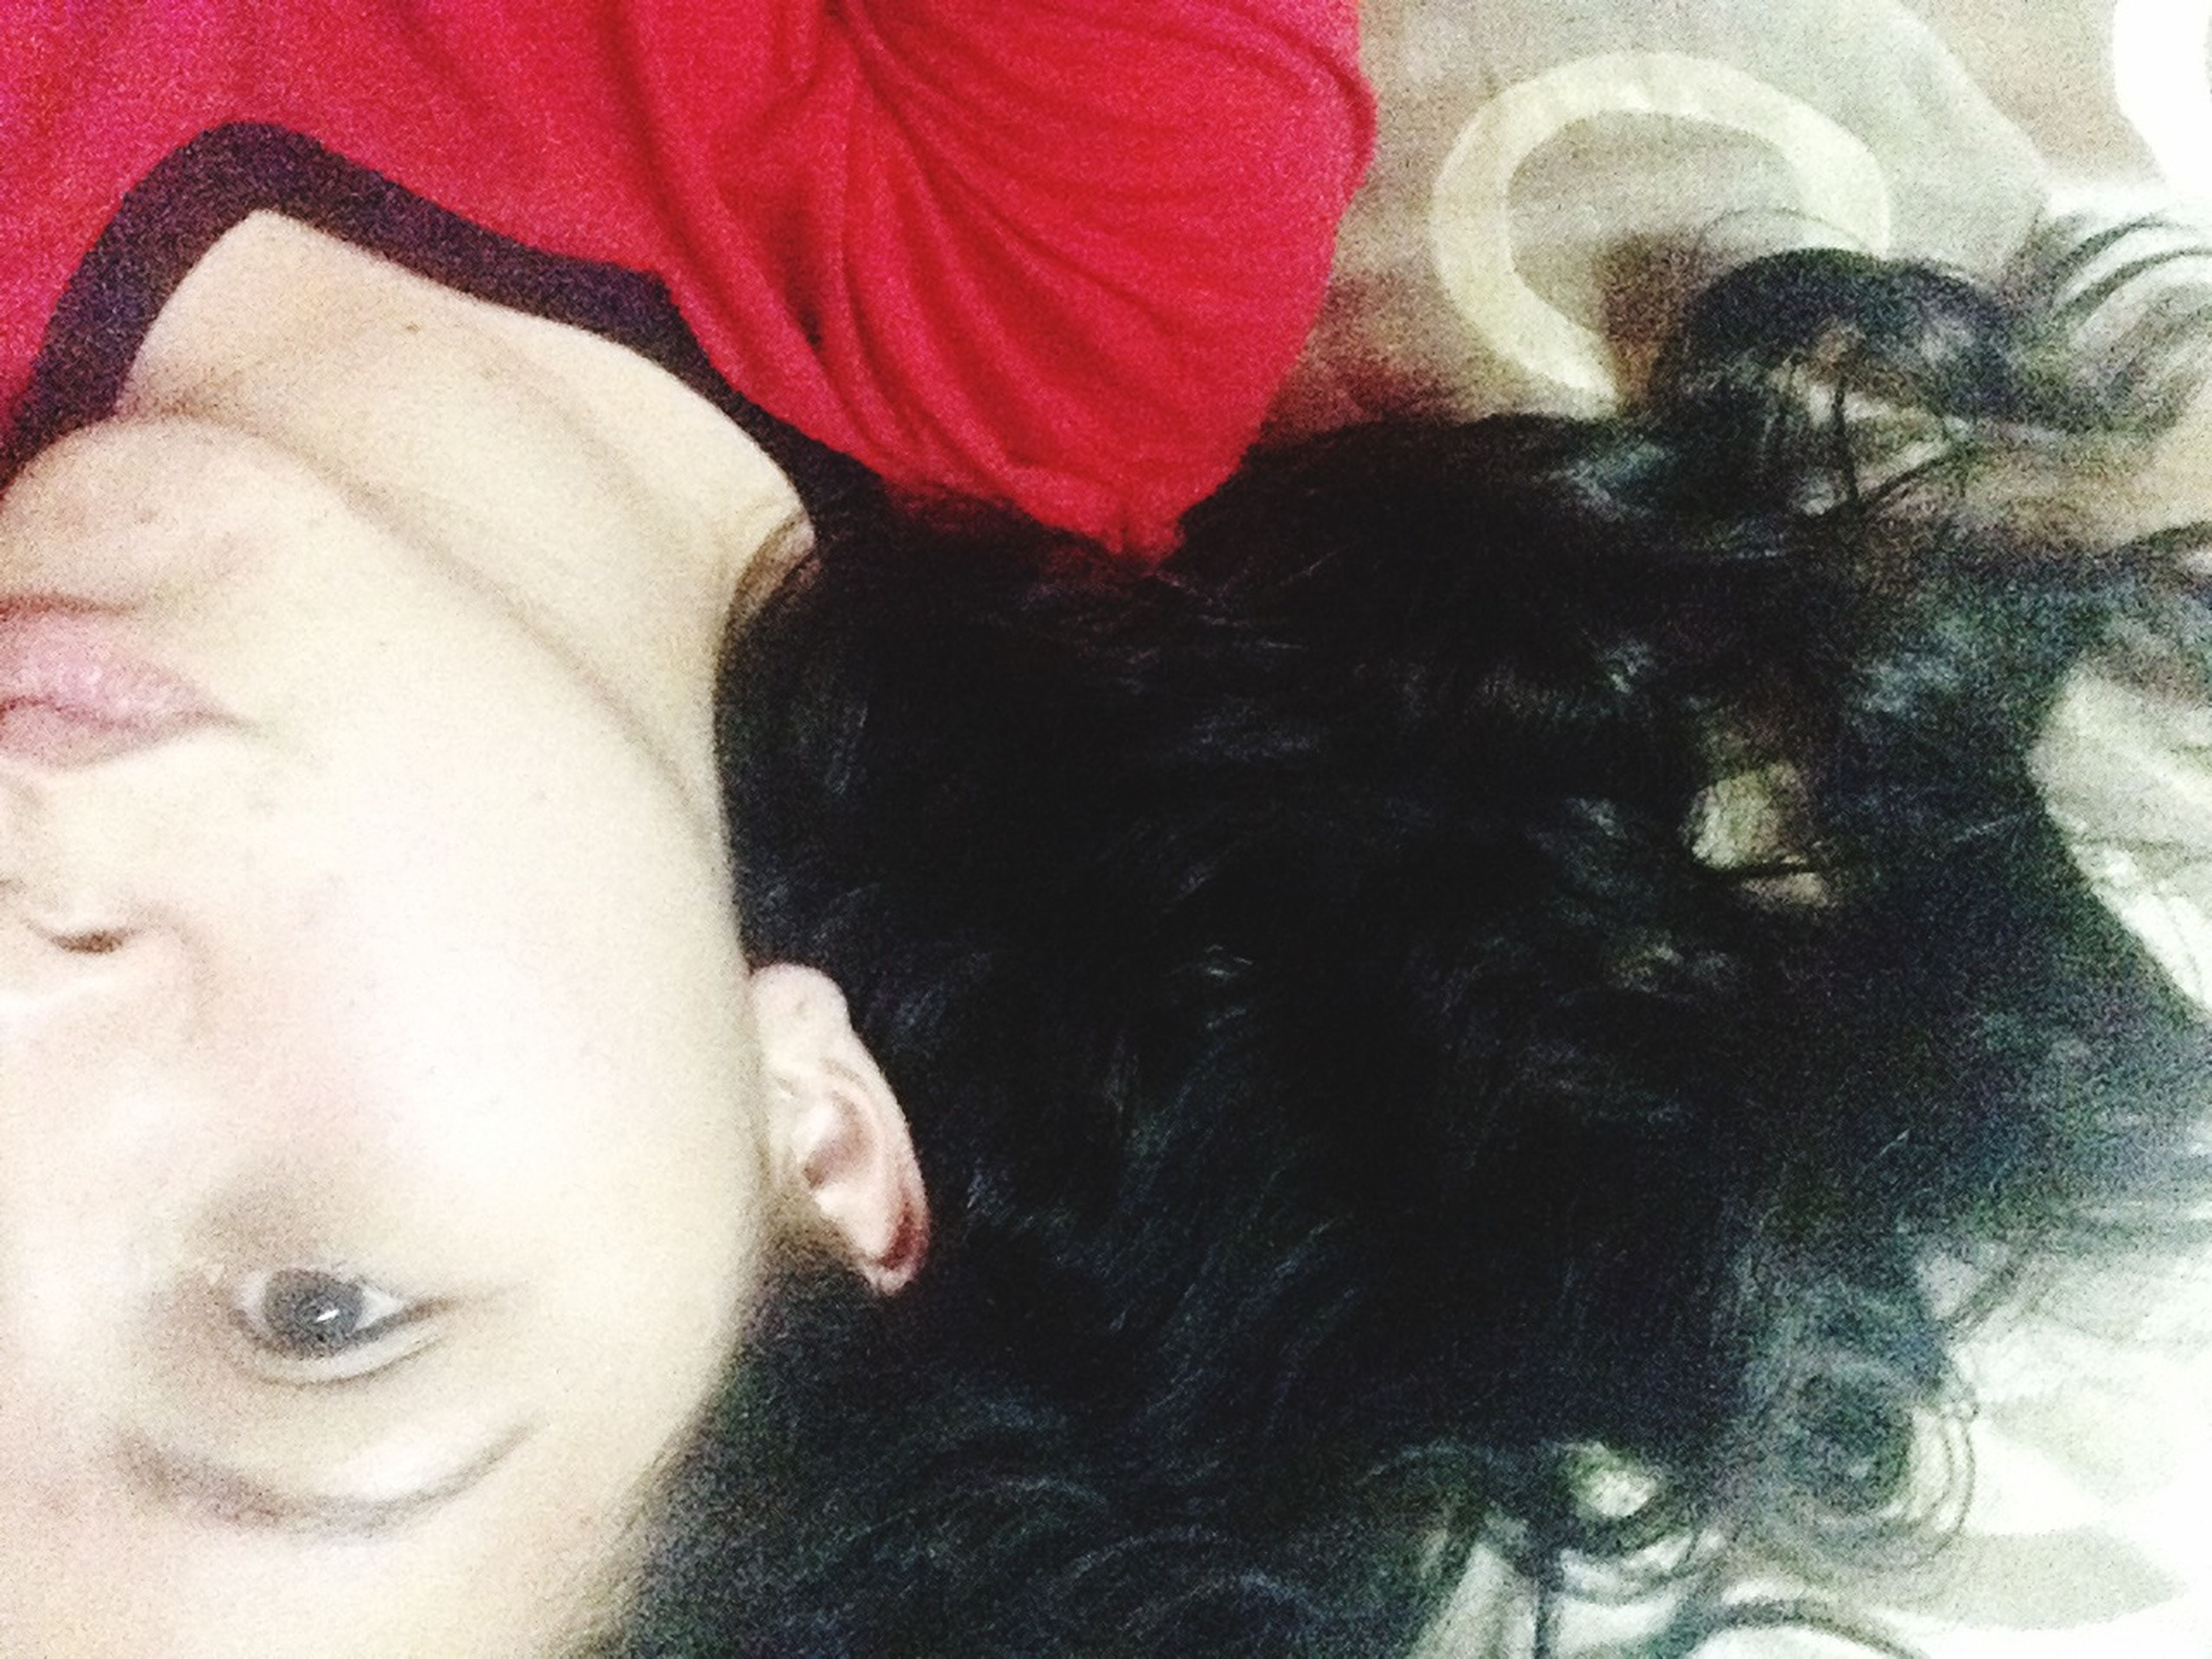 indoors, lifestyles, young women, headshot, young adult, person, leisure activity, relaxation, bed, eyes closed, close-up, lying down, front view, home interior, looking at camera, high angle view, human face